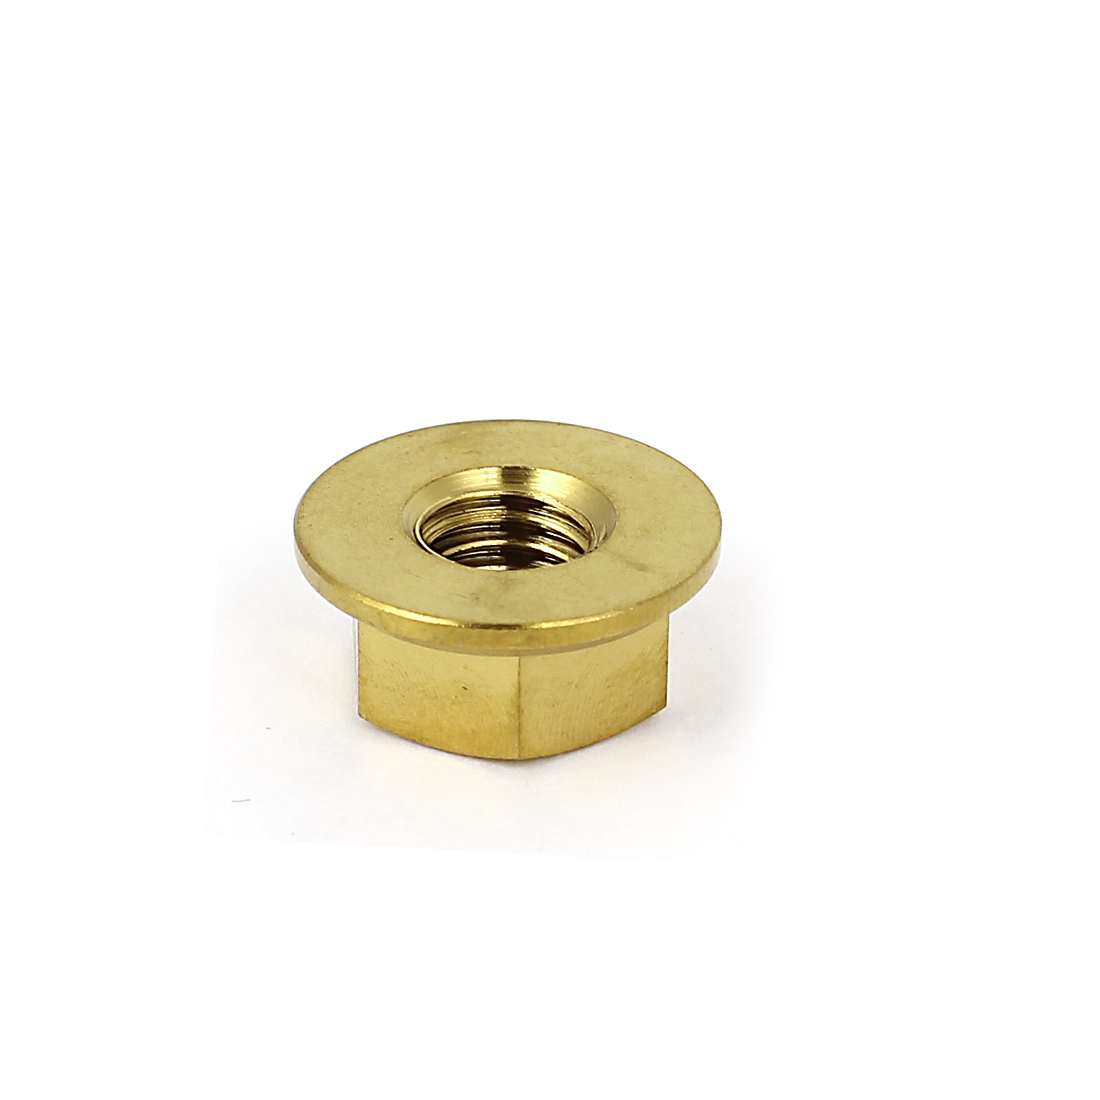 M8x1mm Gold Tone TC4 Titanium Ti Hex Flange Nut for Bike Motorcycle Car Boat